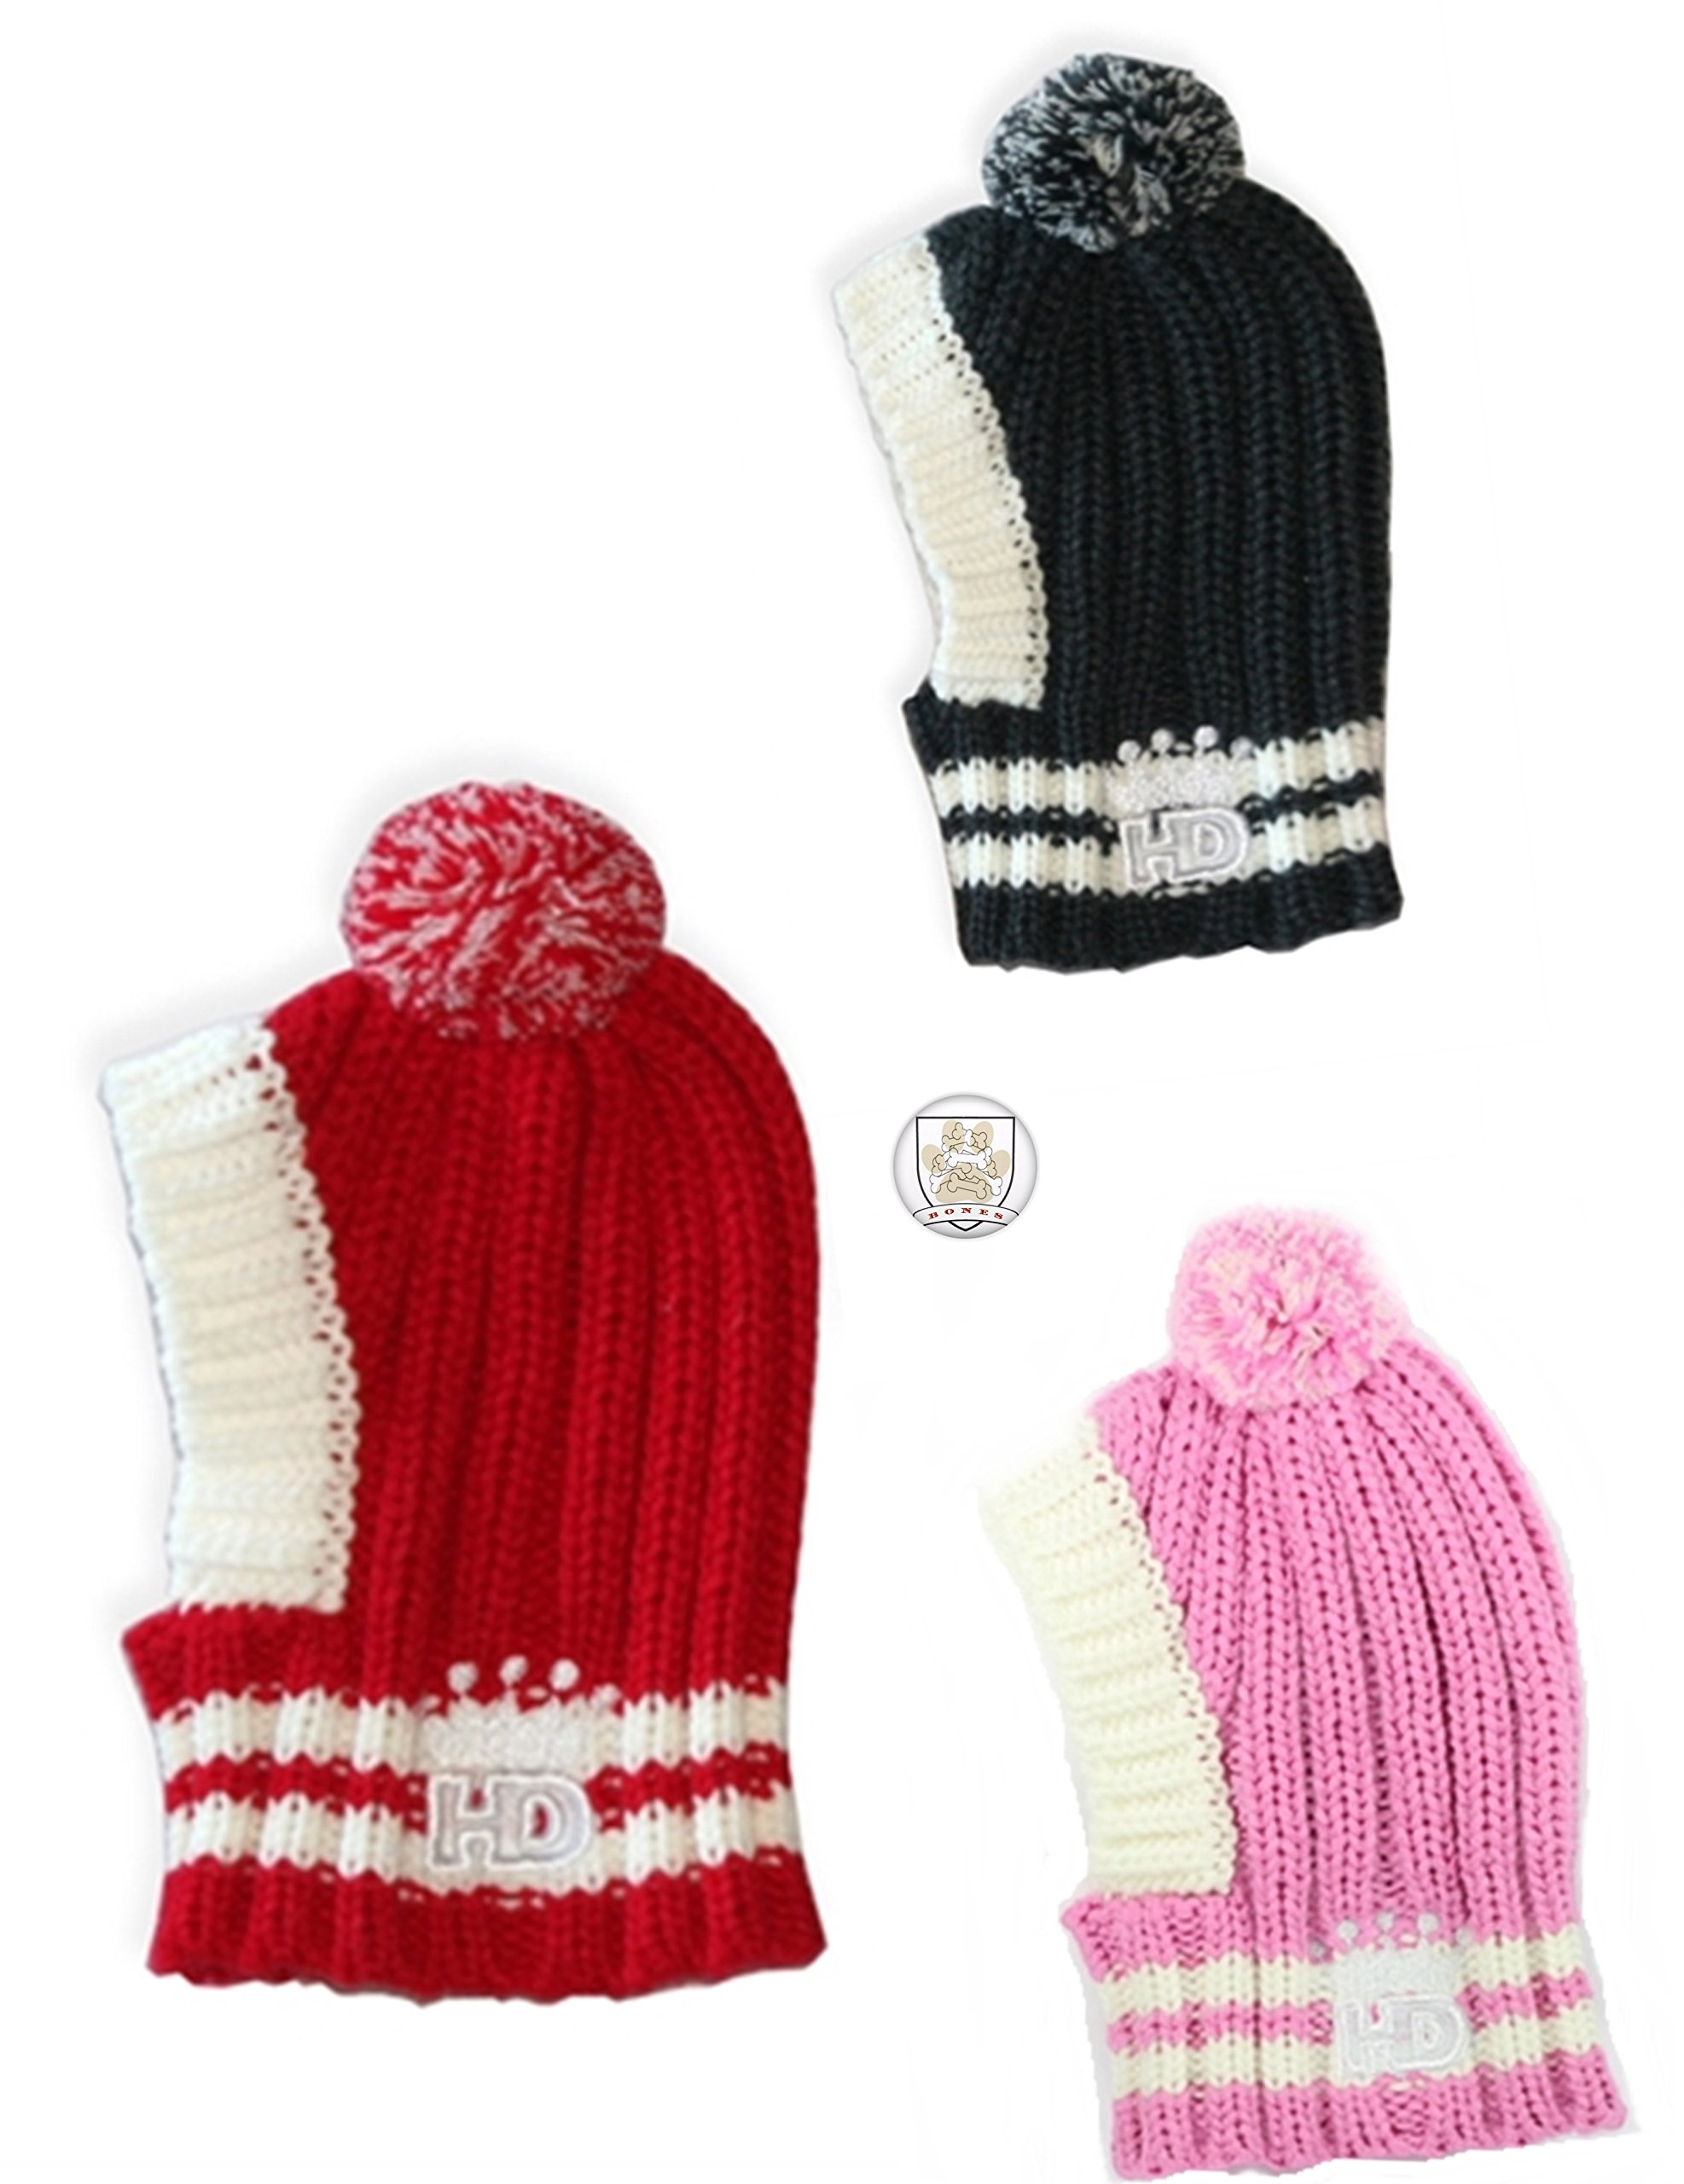 Hip Doggie Thick Ribbed Knit Hat - Pullover Styled - with Pom-Pom and Button - for Dogs 50-110 lbs - Size (Large, Soft Pink)